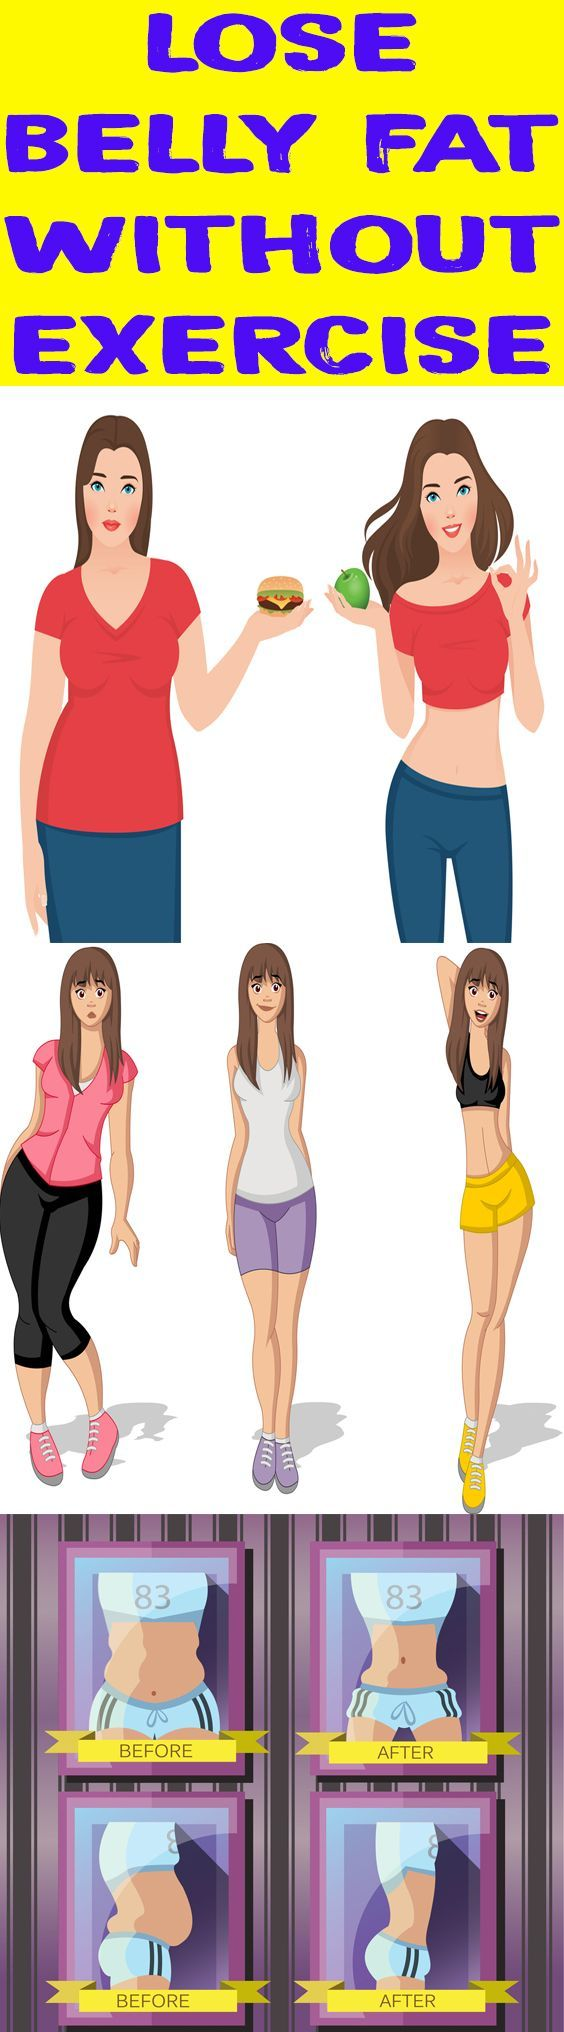 These tips can help you reduce up to 34 inches of belly without exercise